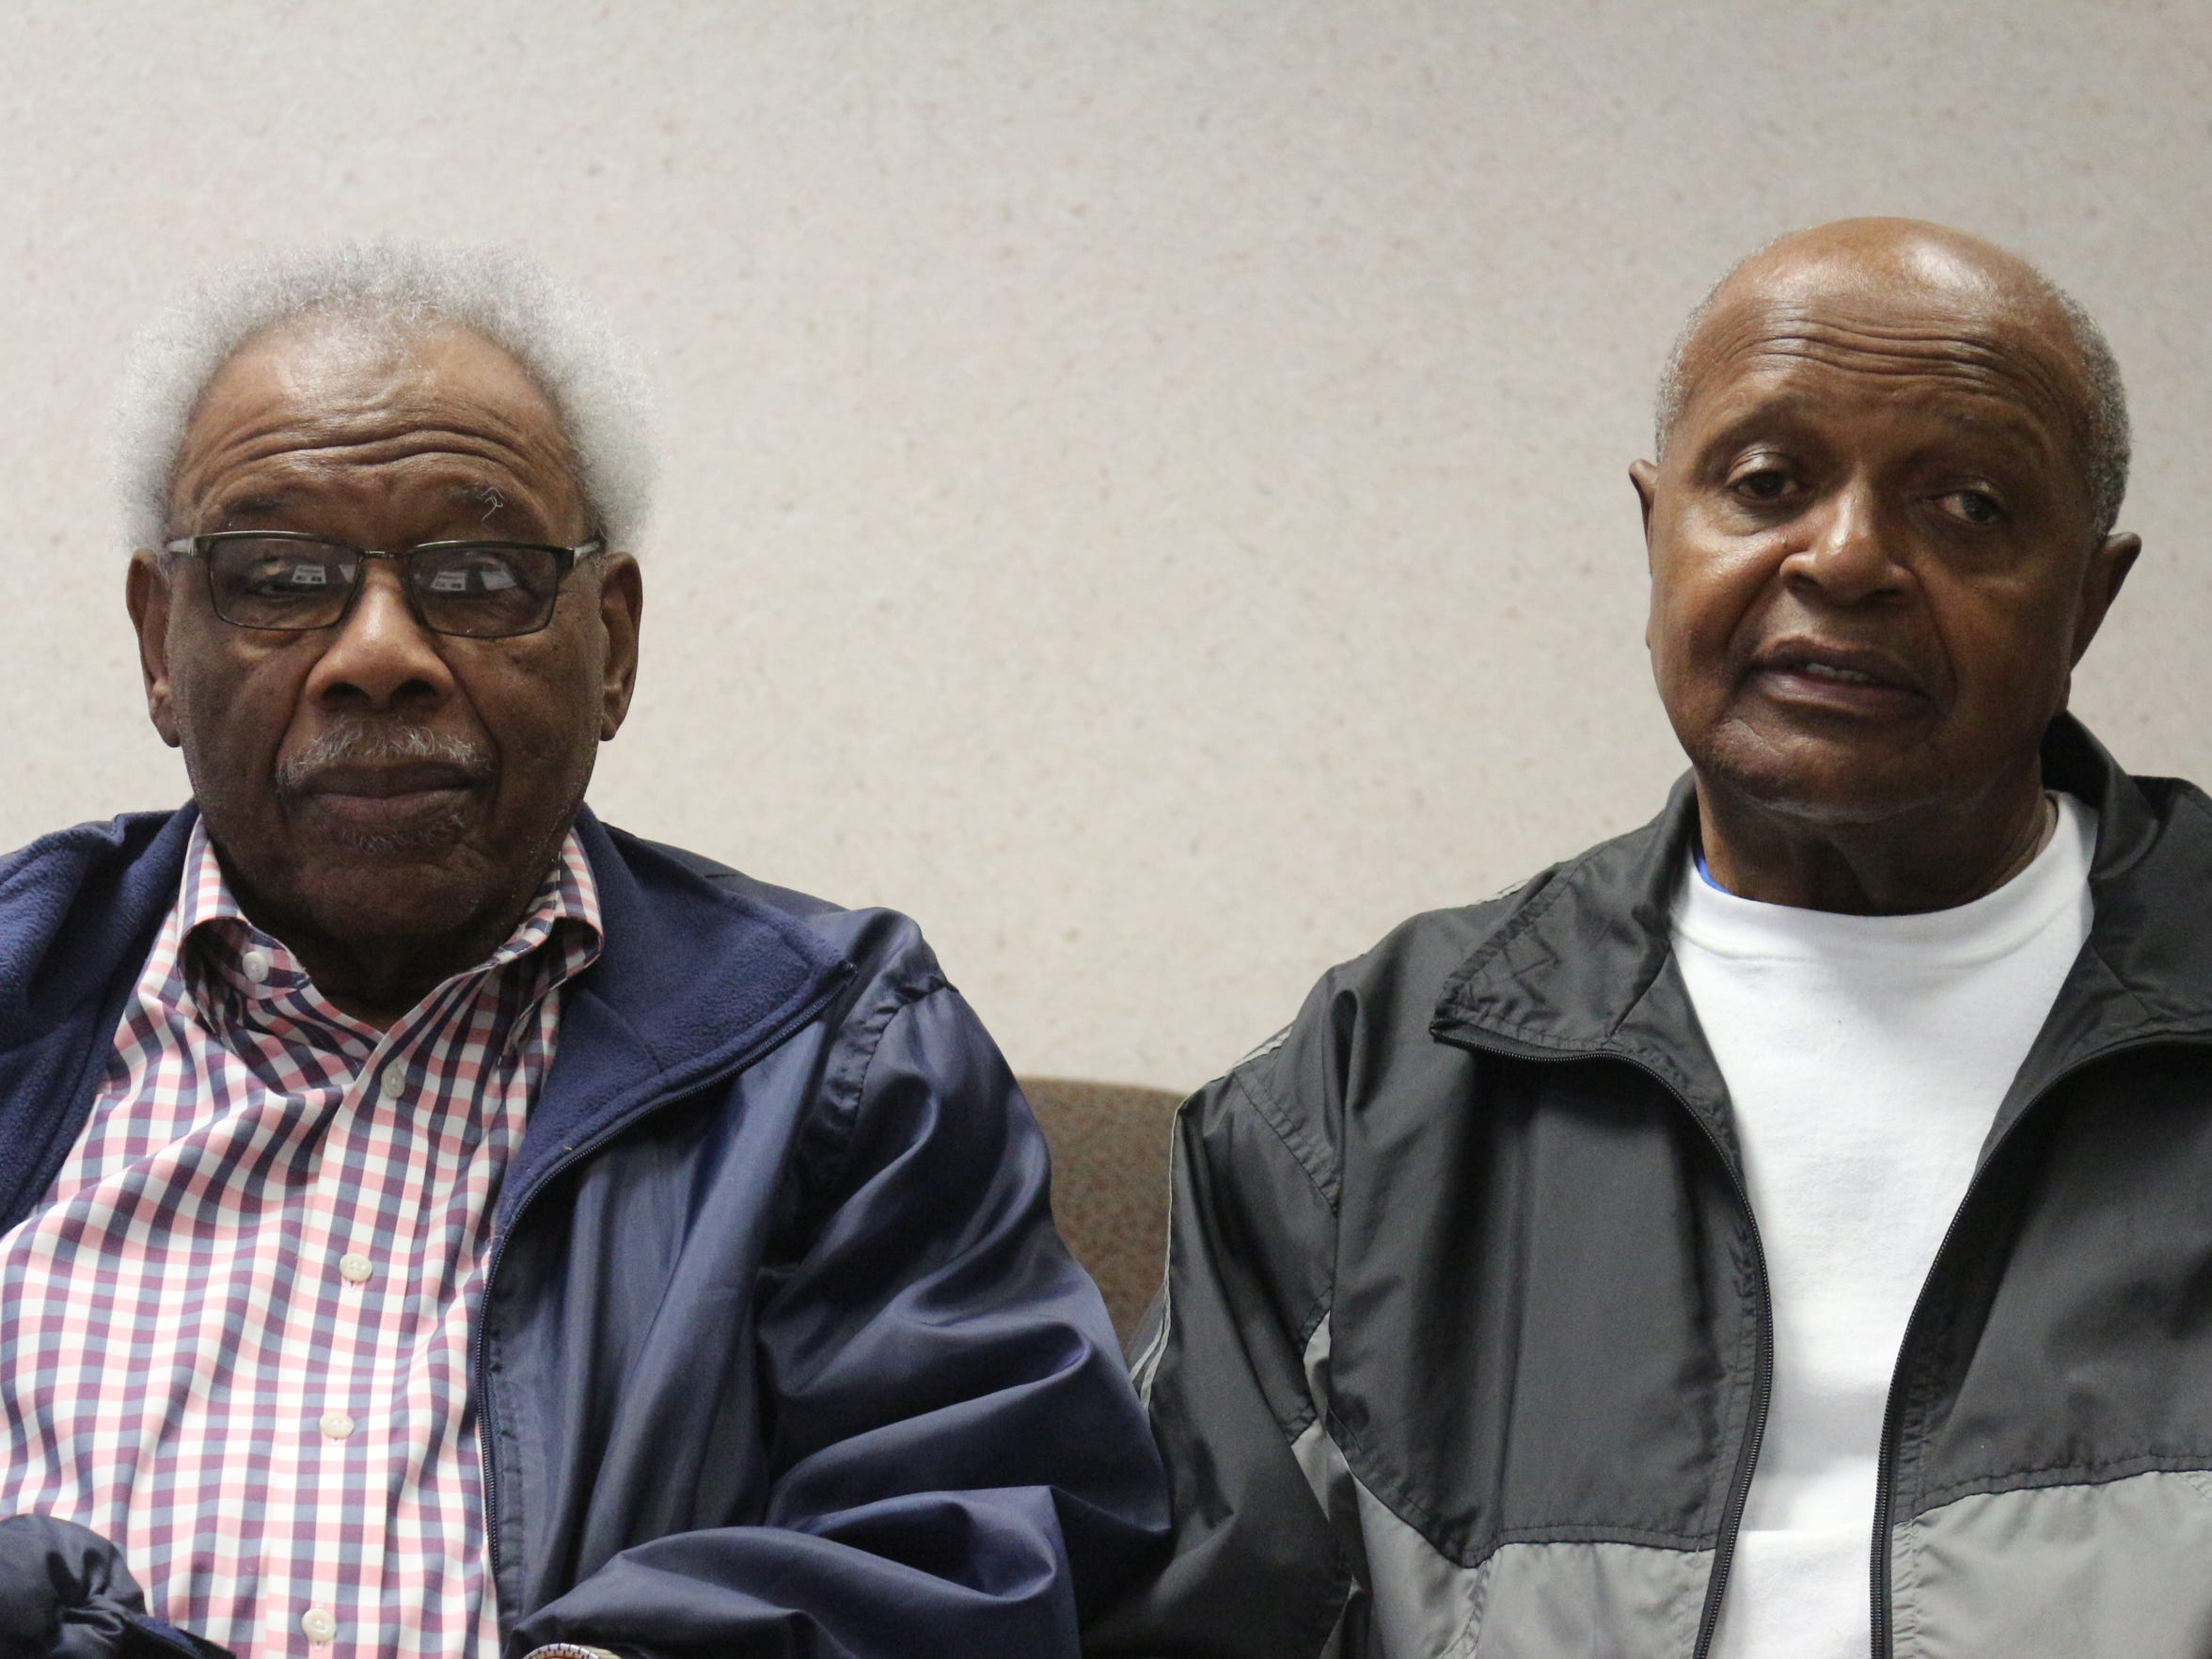 Joseph Roberts, left, and Hyburnia Williams both attended Burt High School as students and went on to serve as faculty in the school before it closed in 1970.